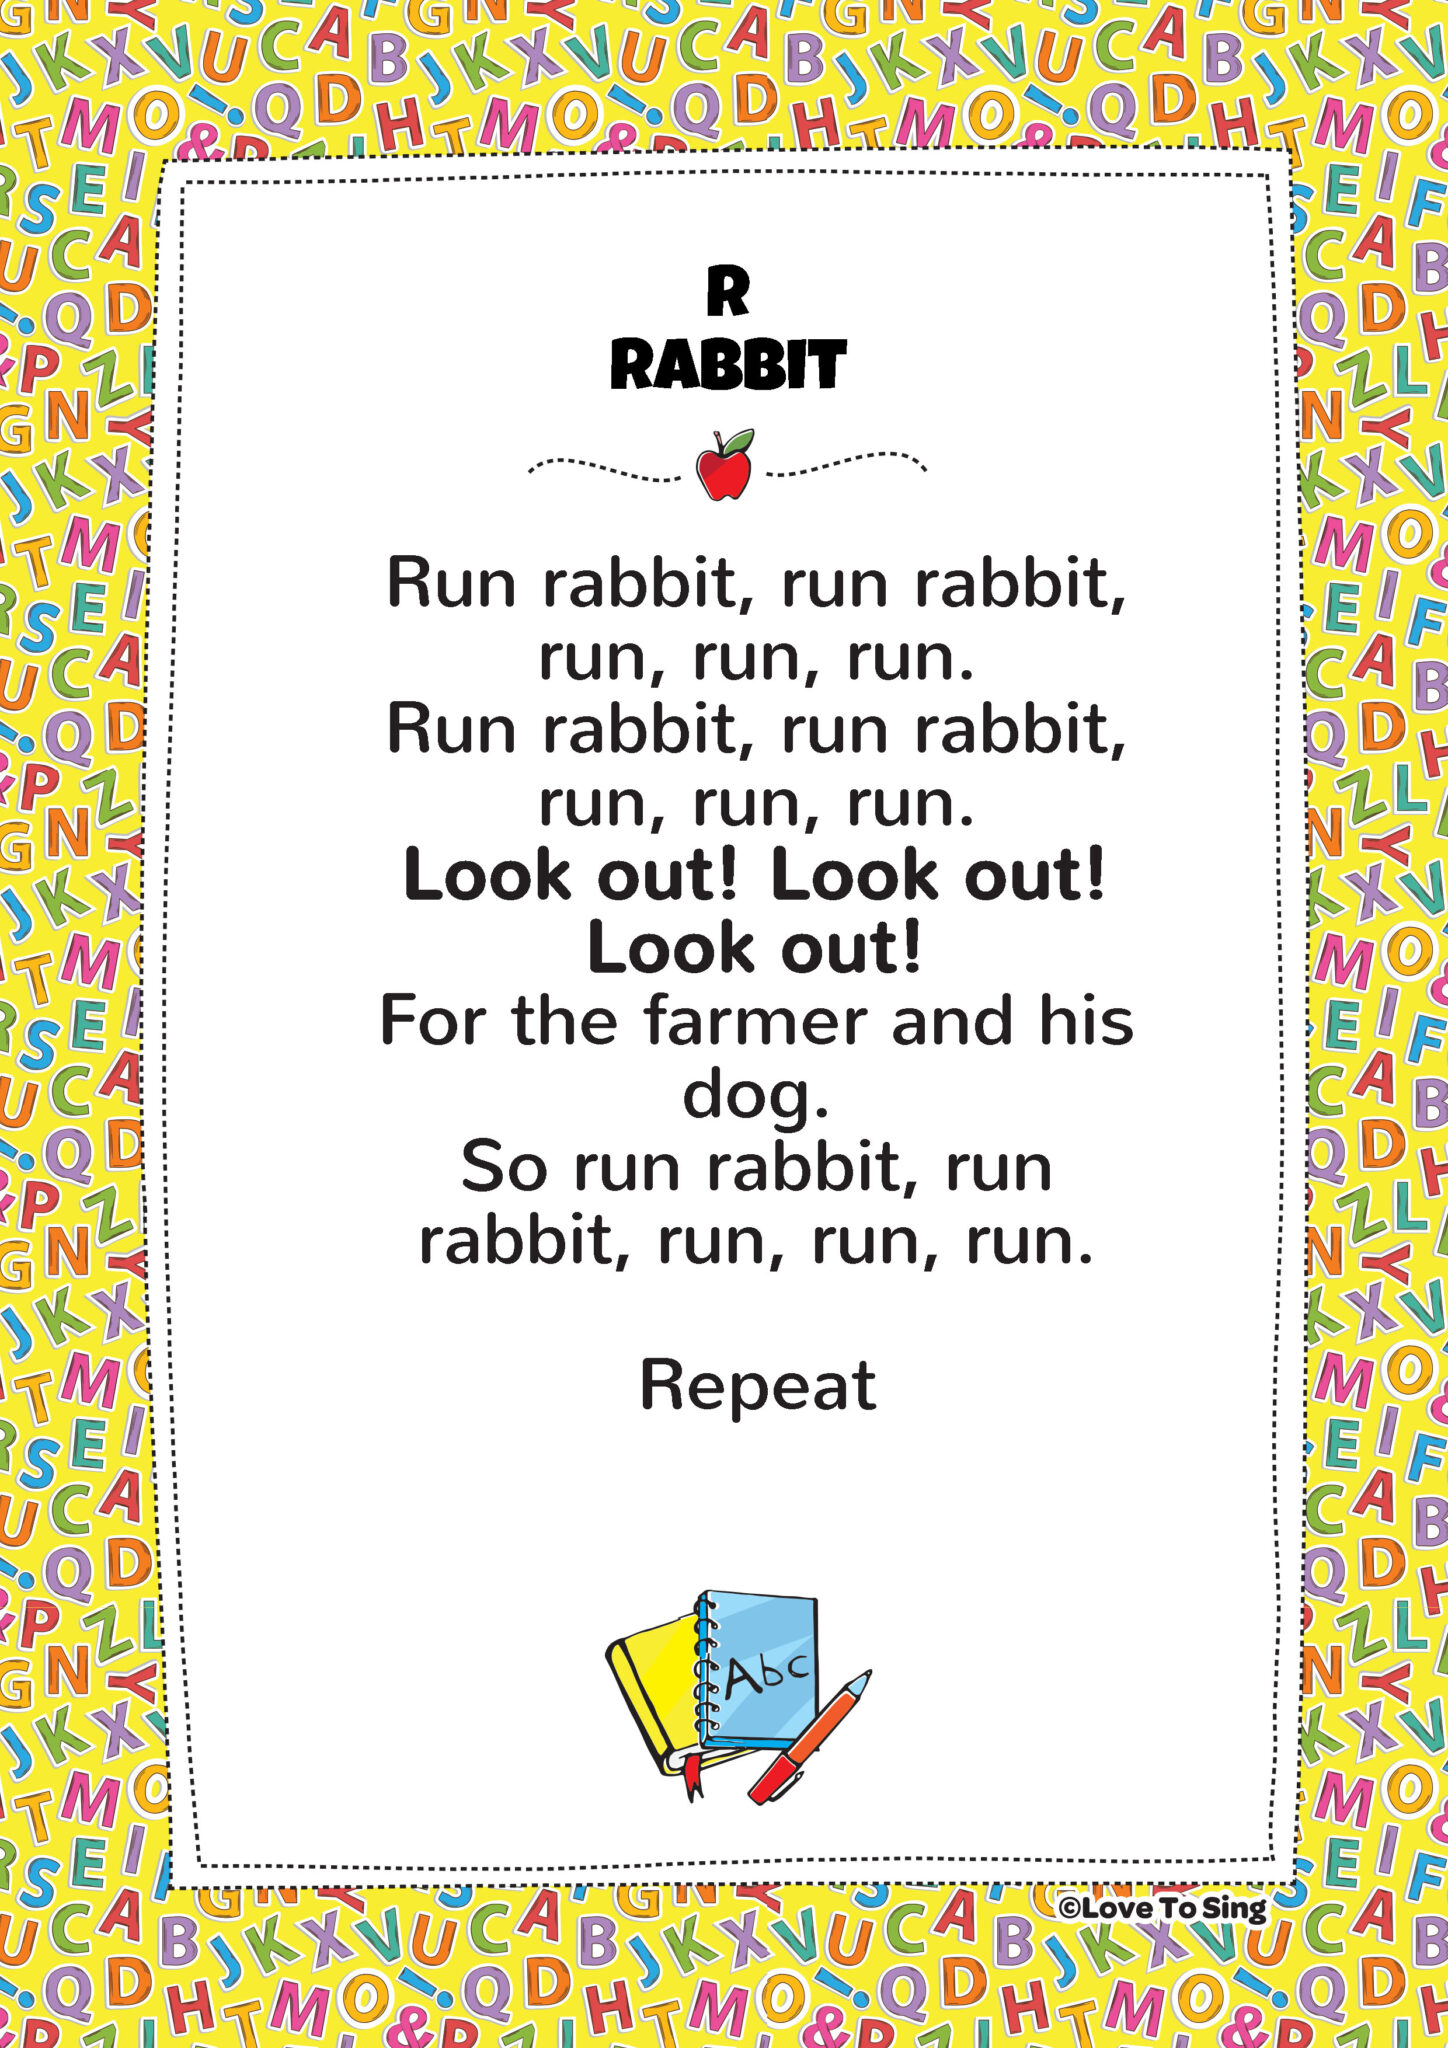 Rabbit (rabbit Song) | Kids Video Song with FREE Lyrics & Activities ...